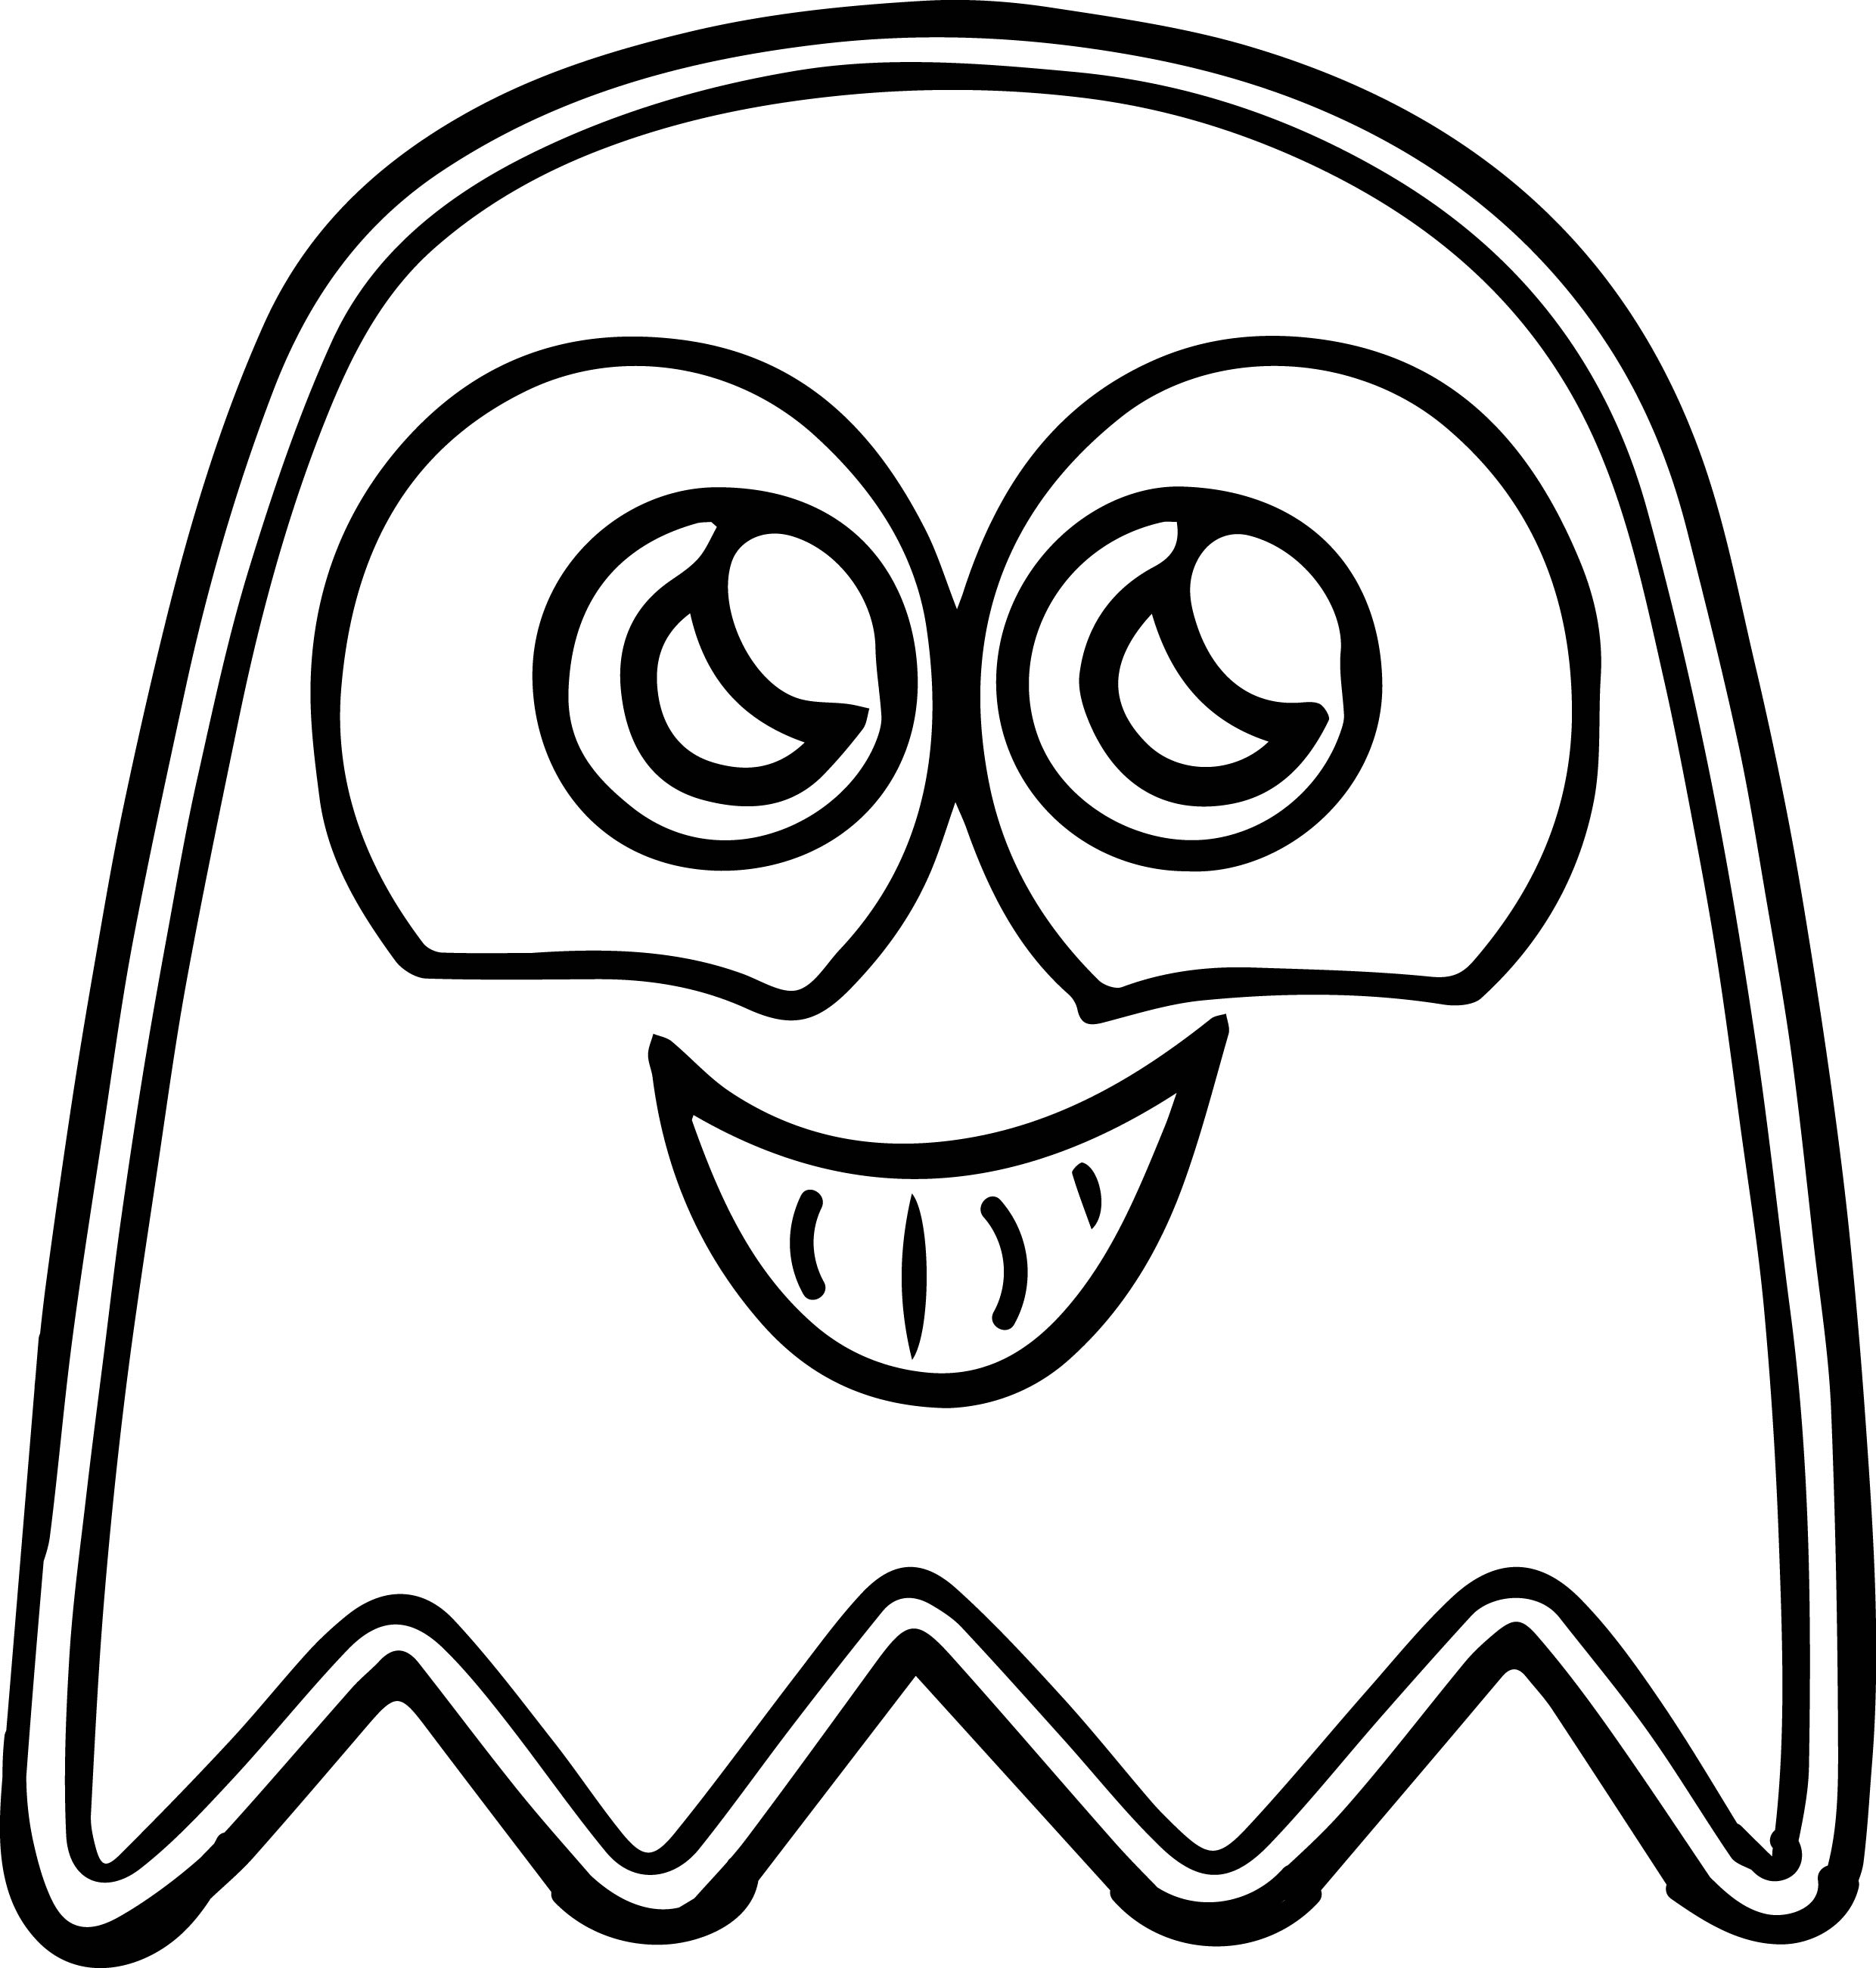 pacman cute ghost coloring page - Ghost Coloring Page